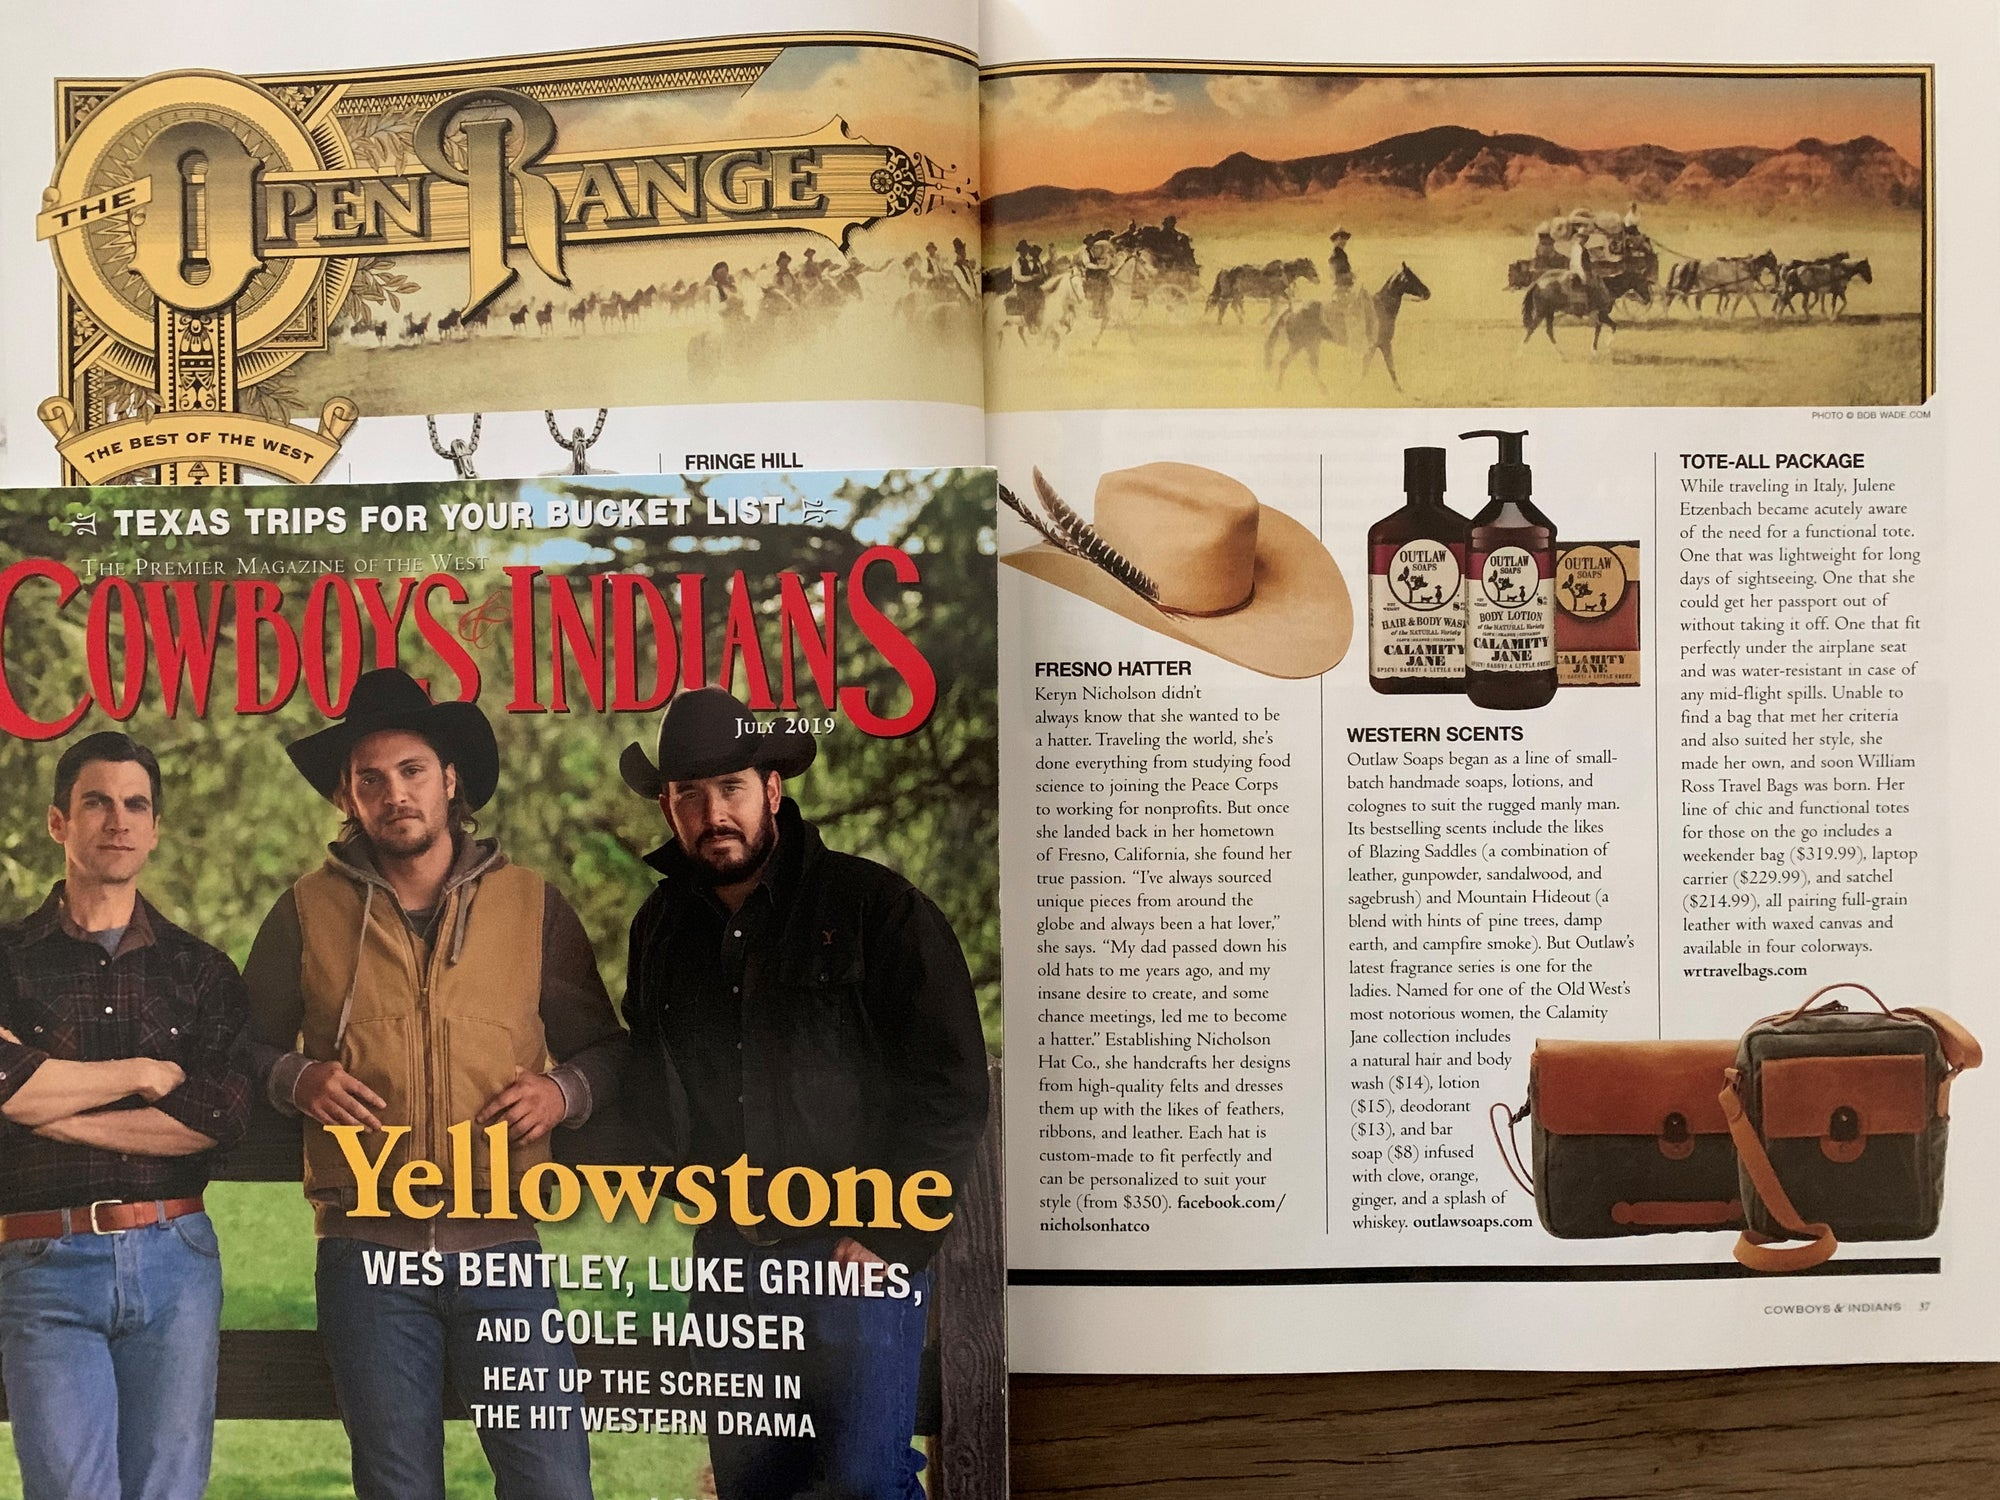 TOTE-ALL PACKAGE:  Cowboys & Indians Magazine The Open Range, edit feature